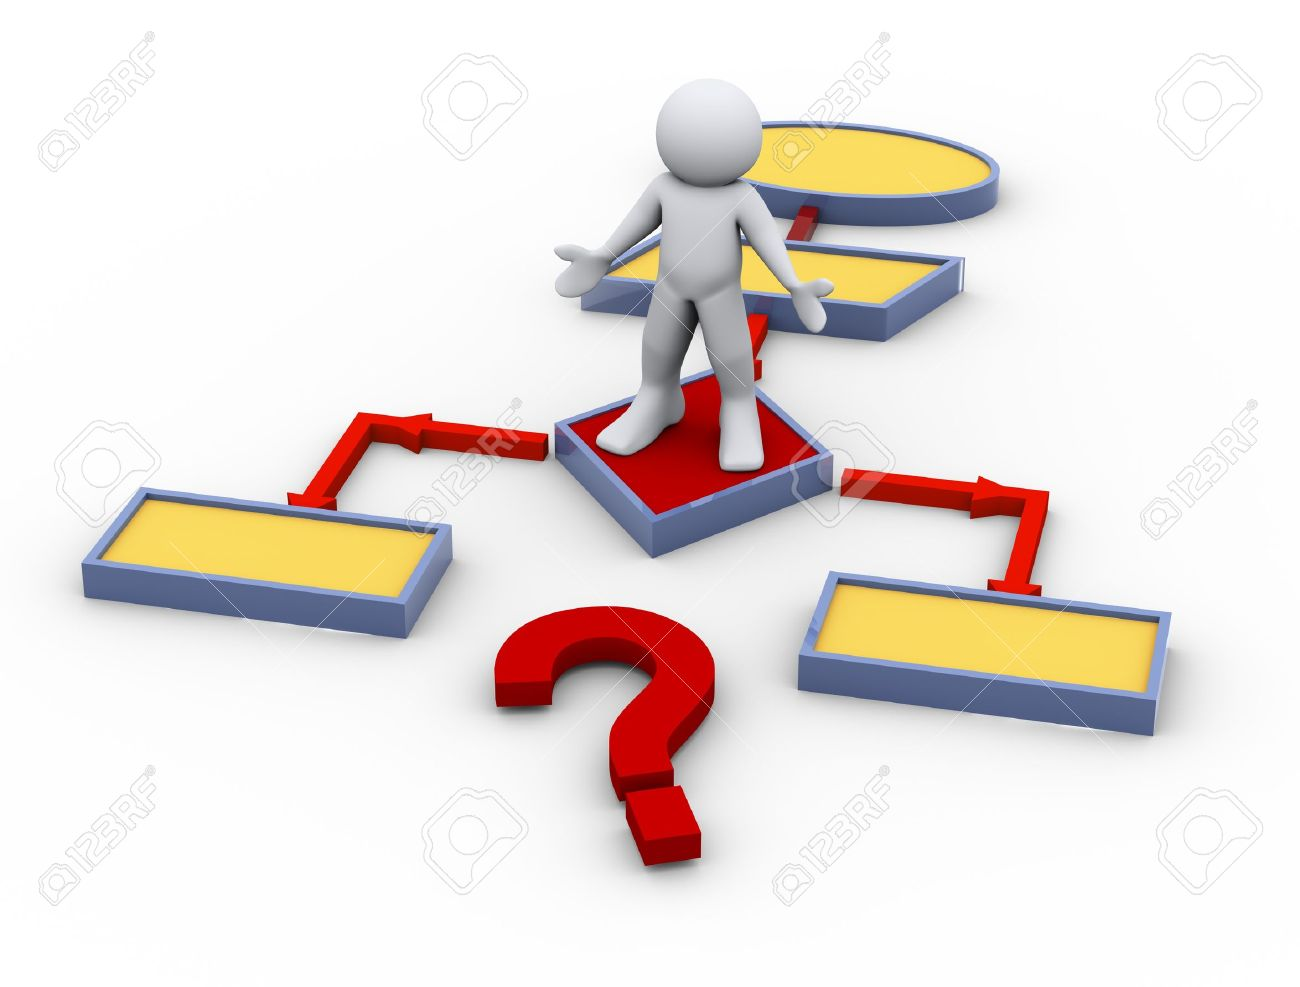 3d Render Of Person In Doubt About Decision Standing On If Symbol